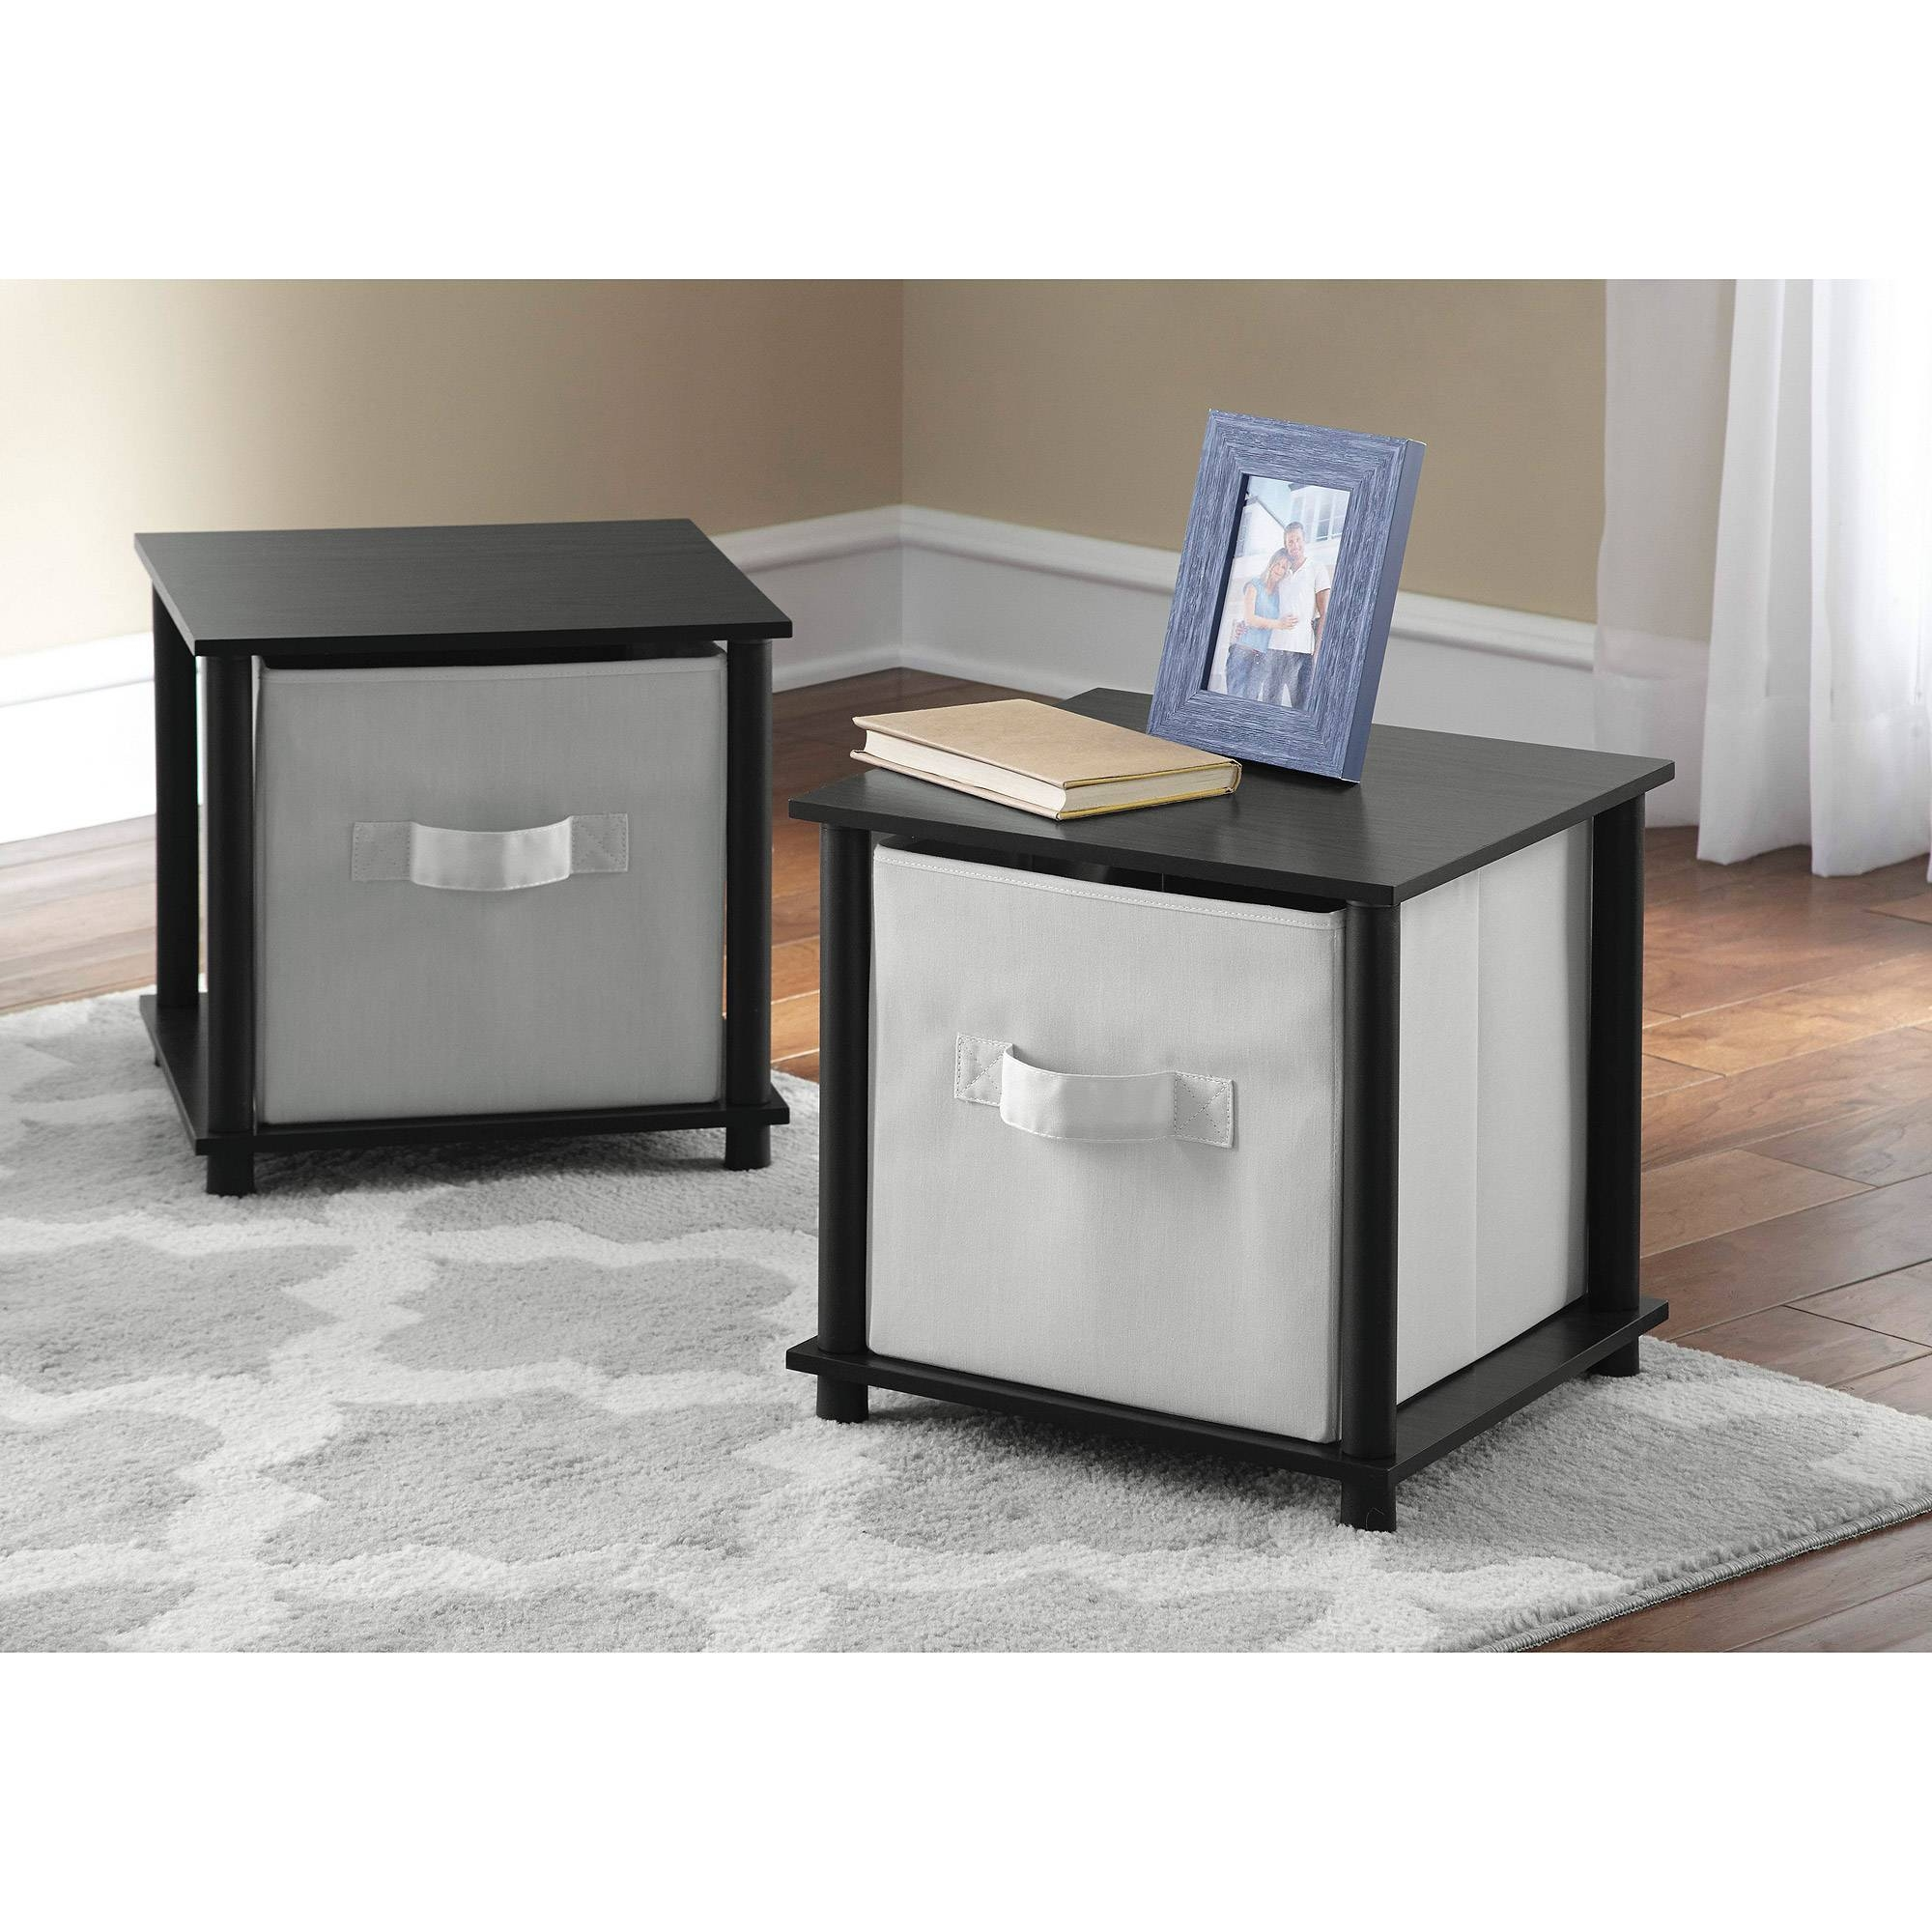 Sofa End Tables With Storage 30 Ideas Of Sofa Side Tables With Storages